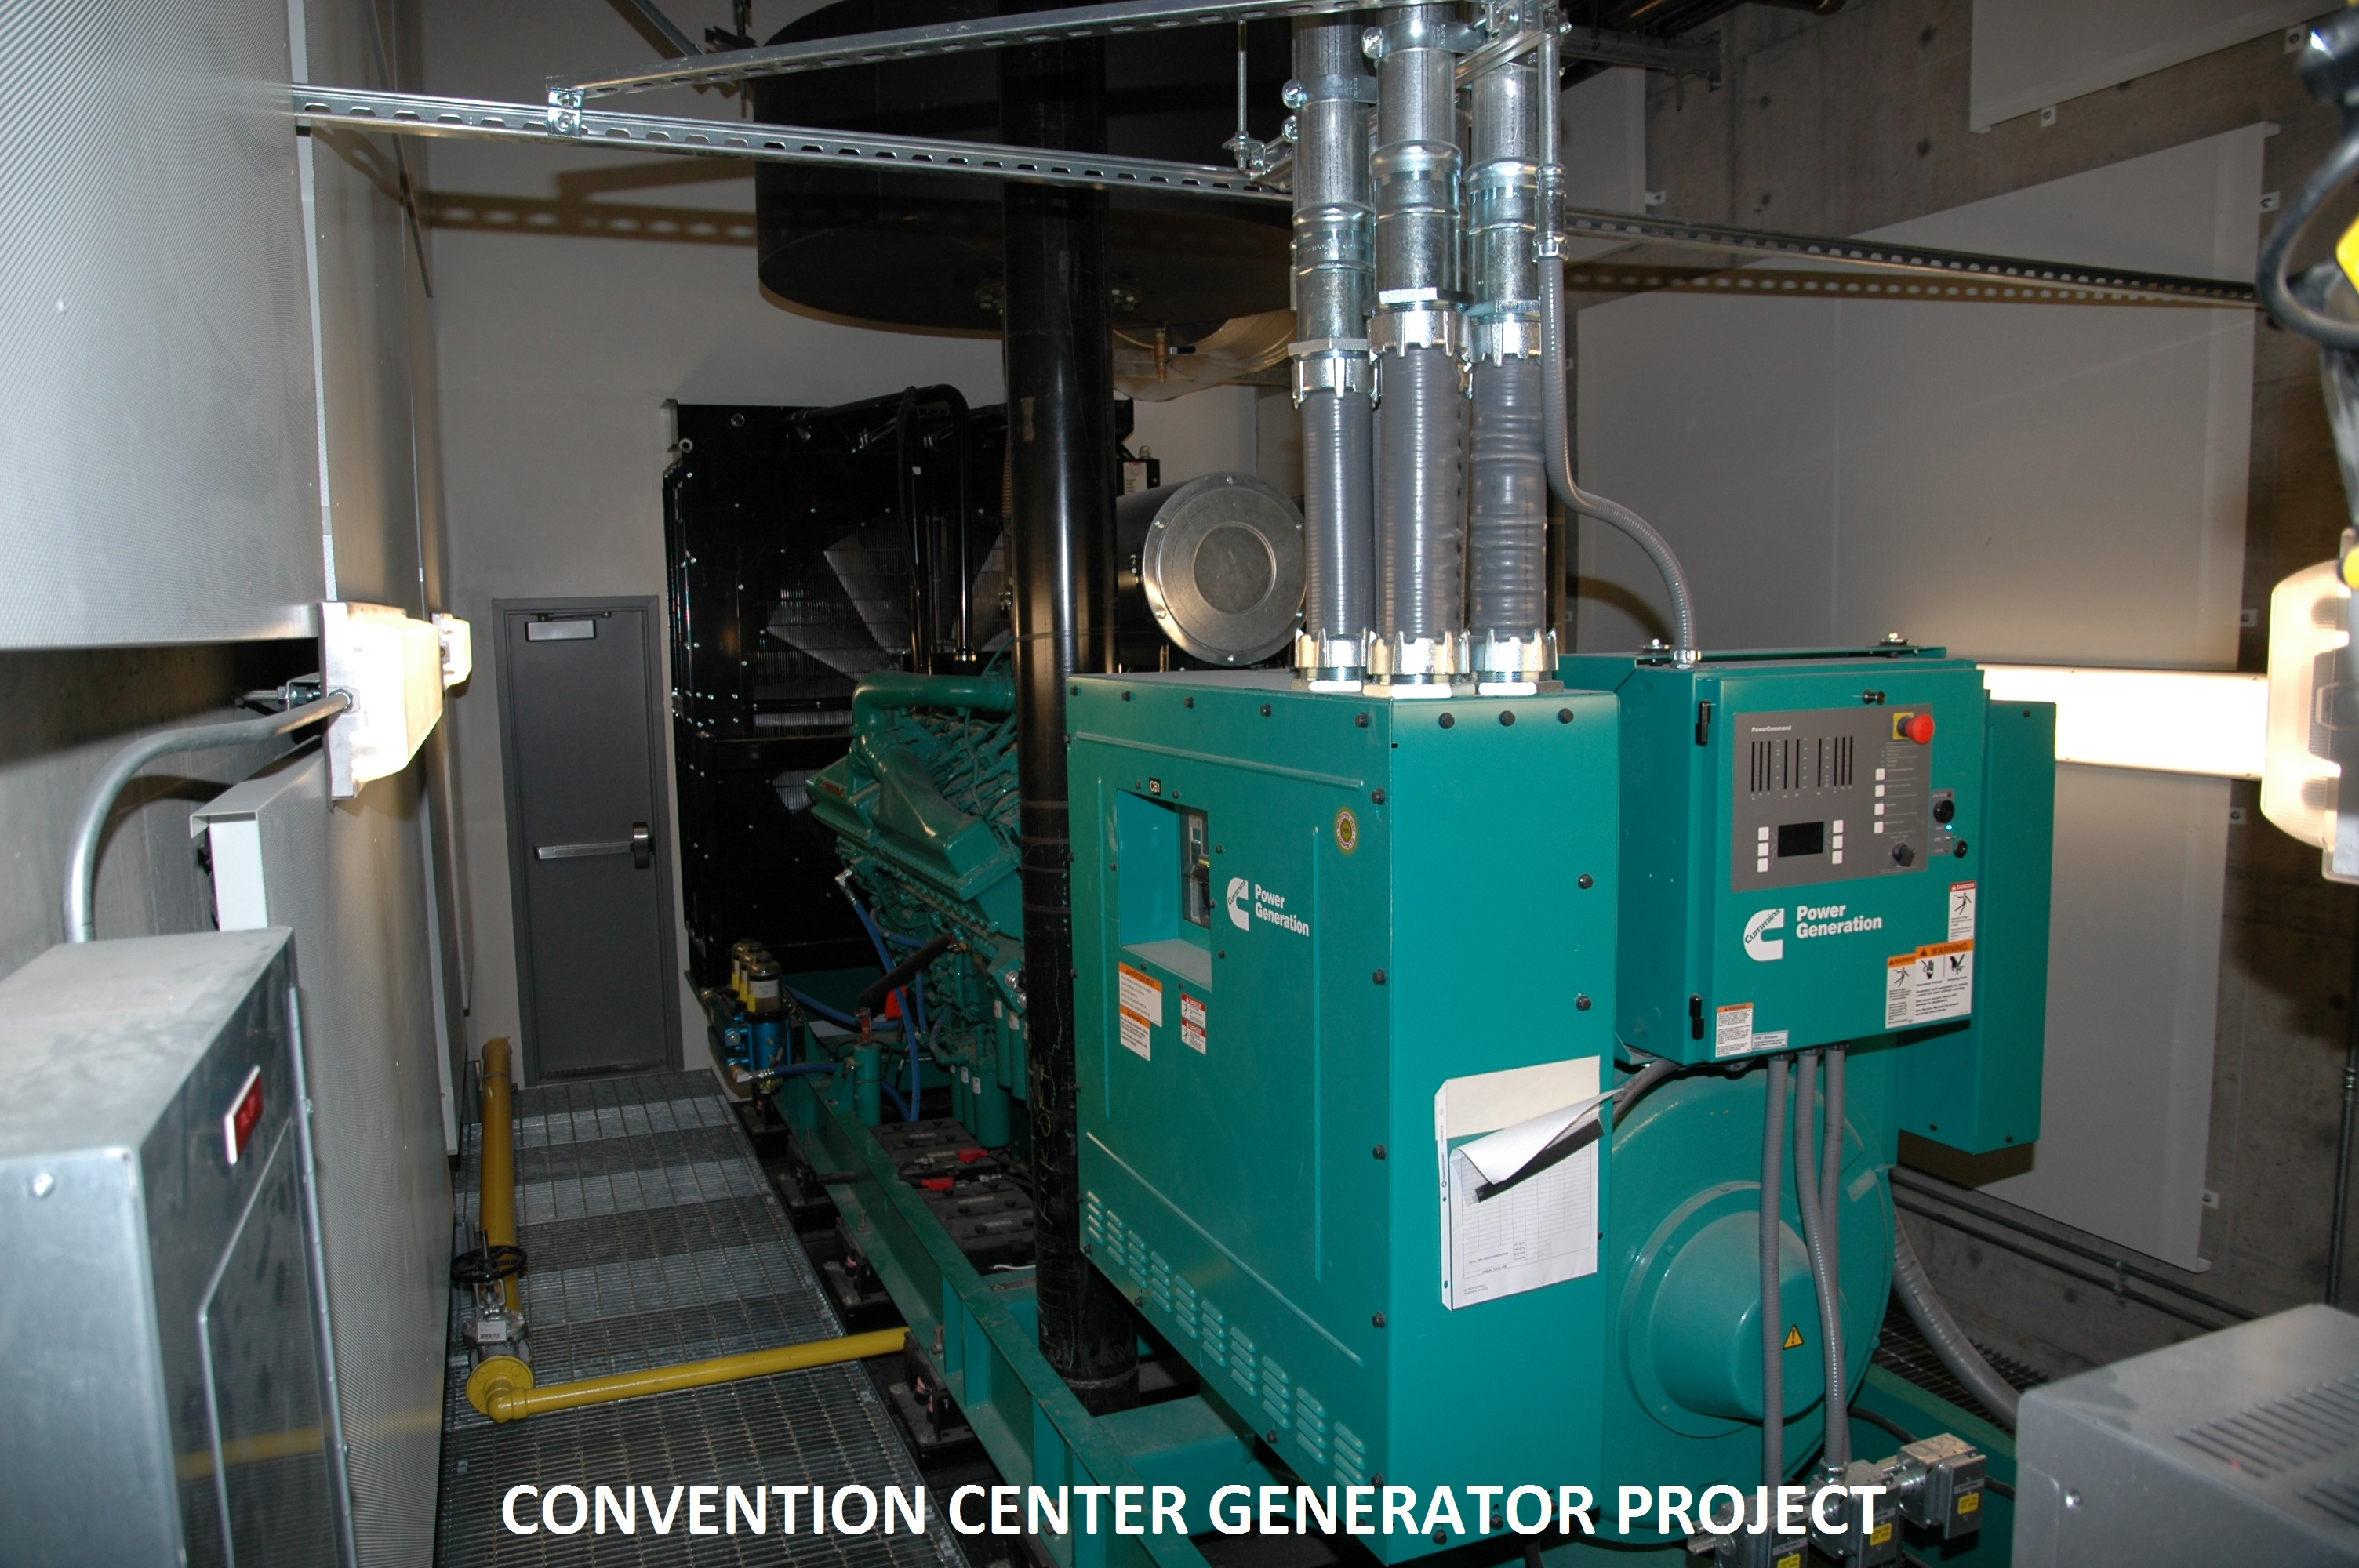 Convention Center Generator